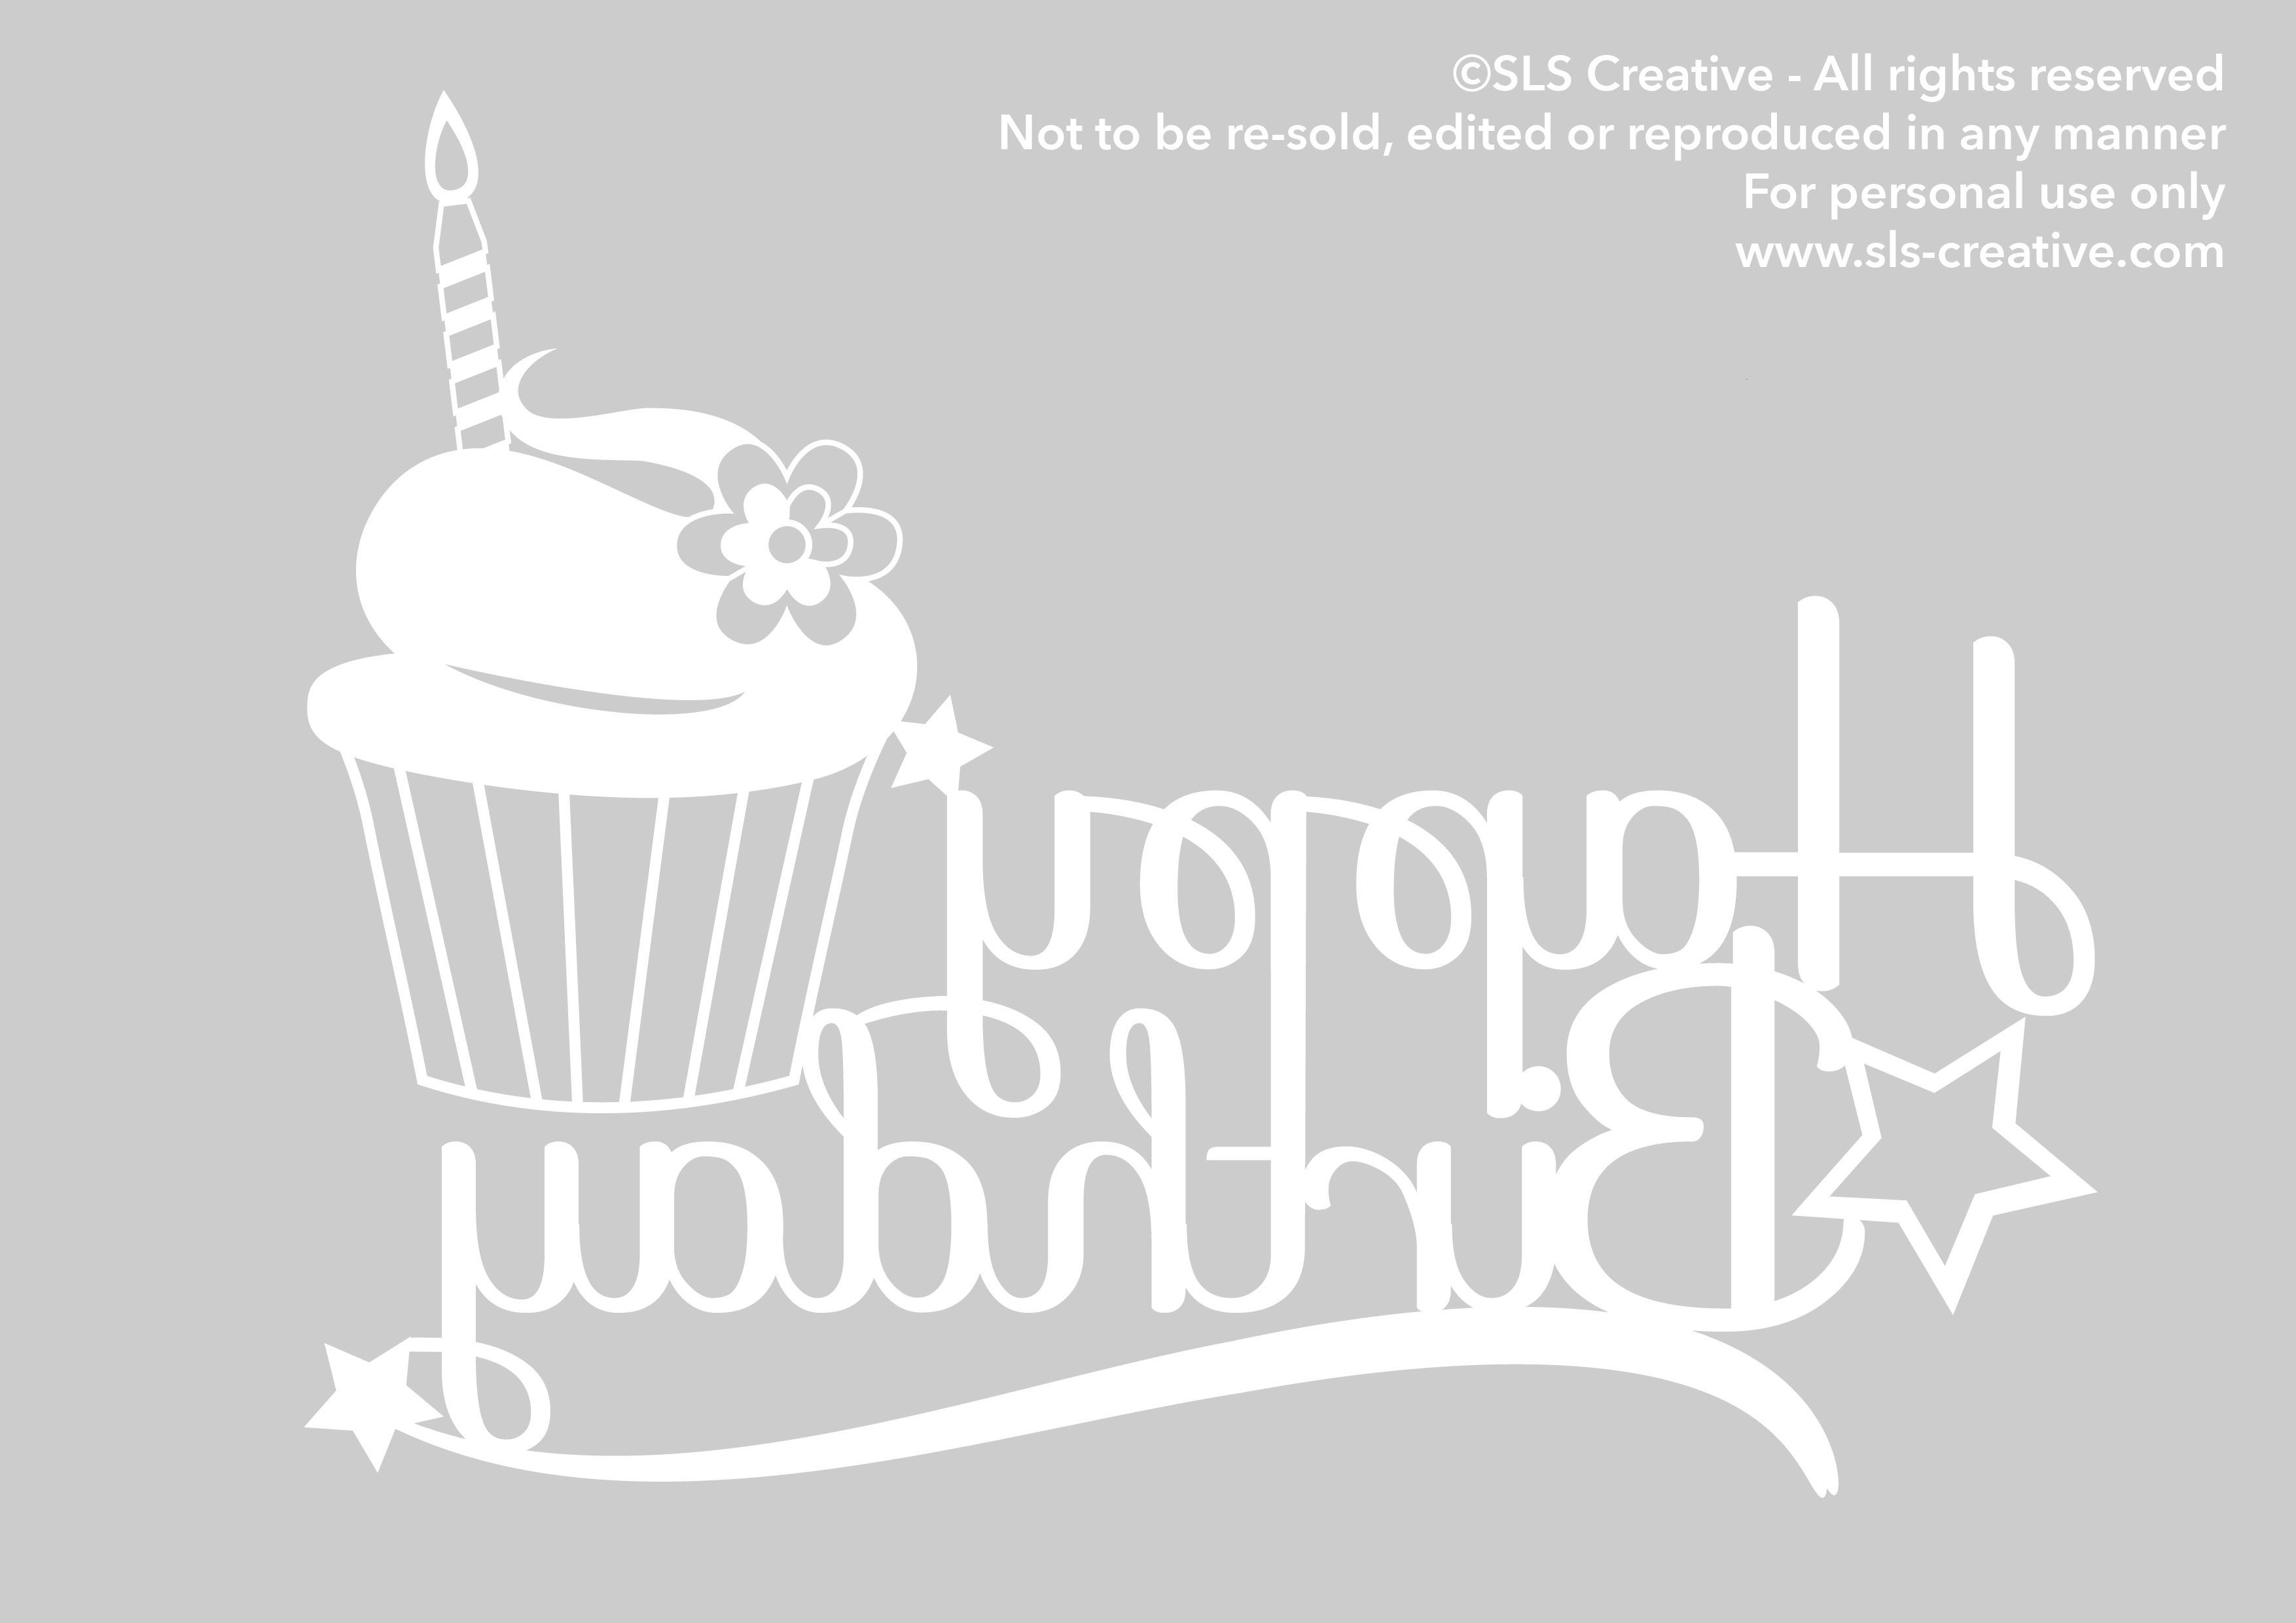 Happy Birthday SLS Creative! – Free Paper Cut Template | SLS Creative